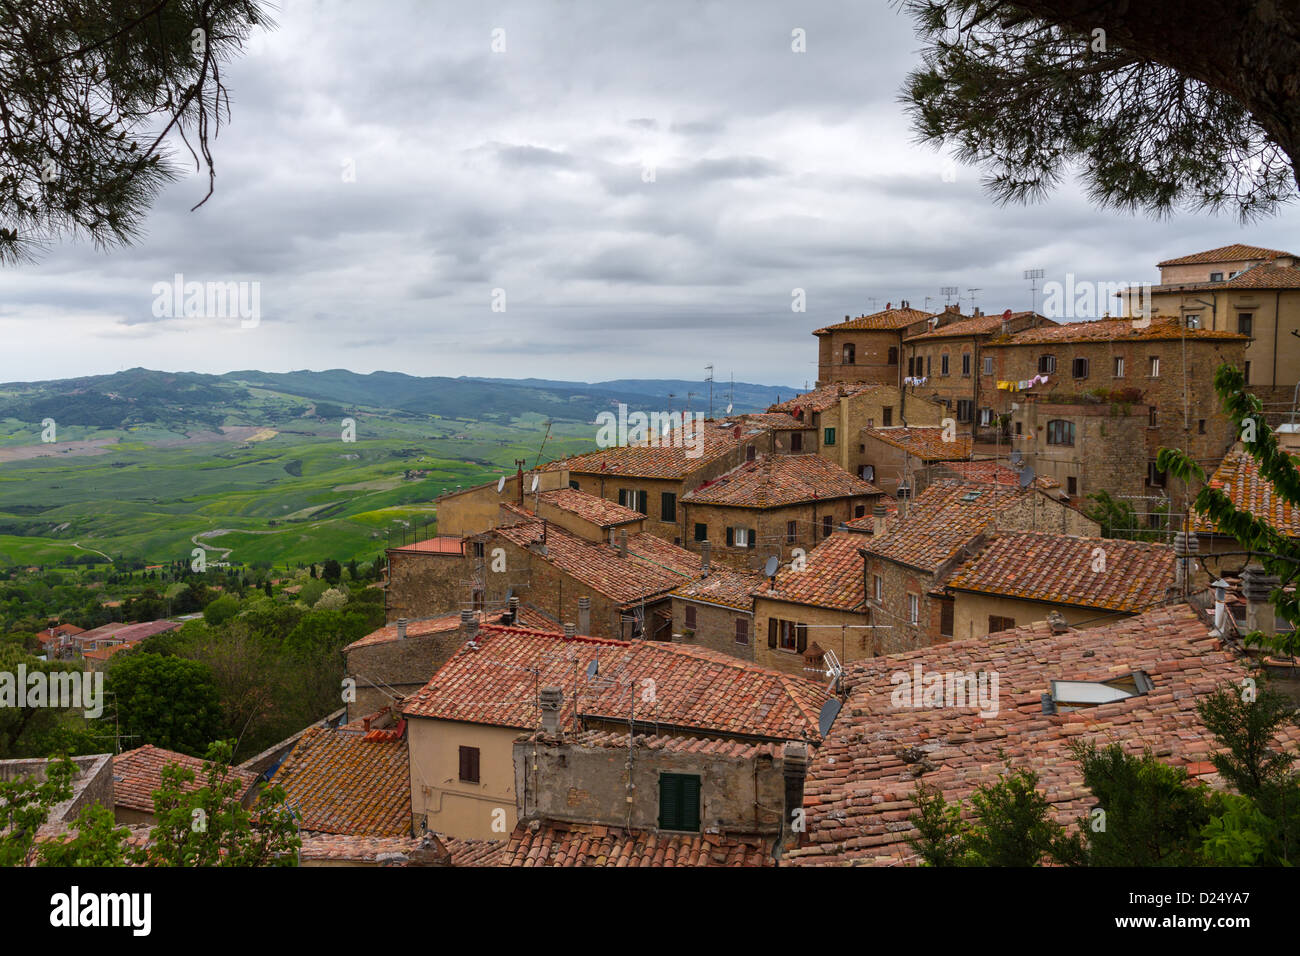 Volterra and view over Val d'Orcia, Tuscany, Italy - Stock Image